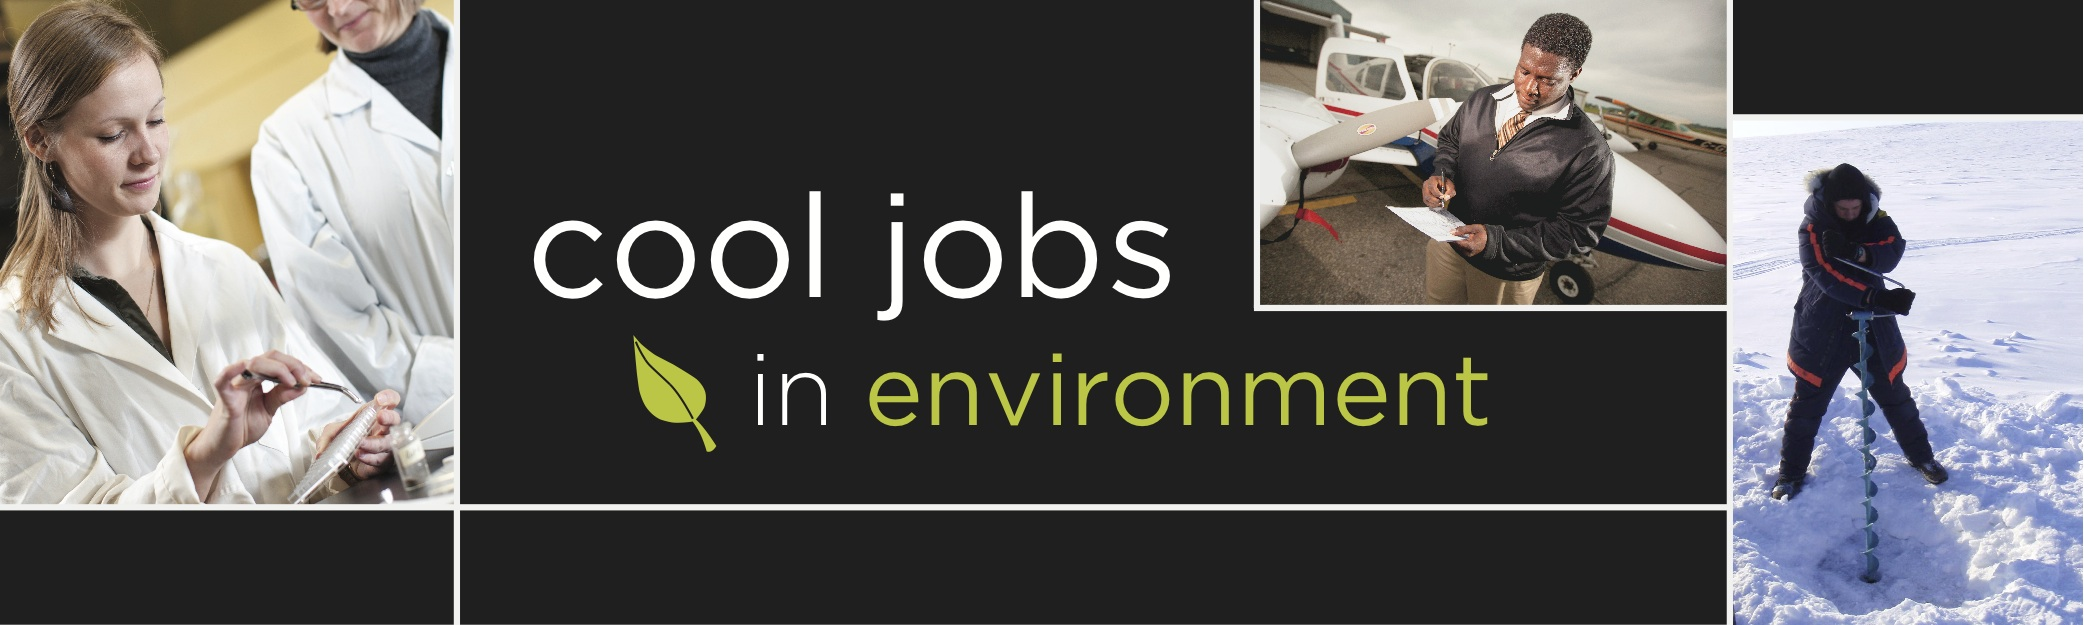 careers in environment environment